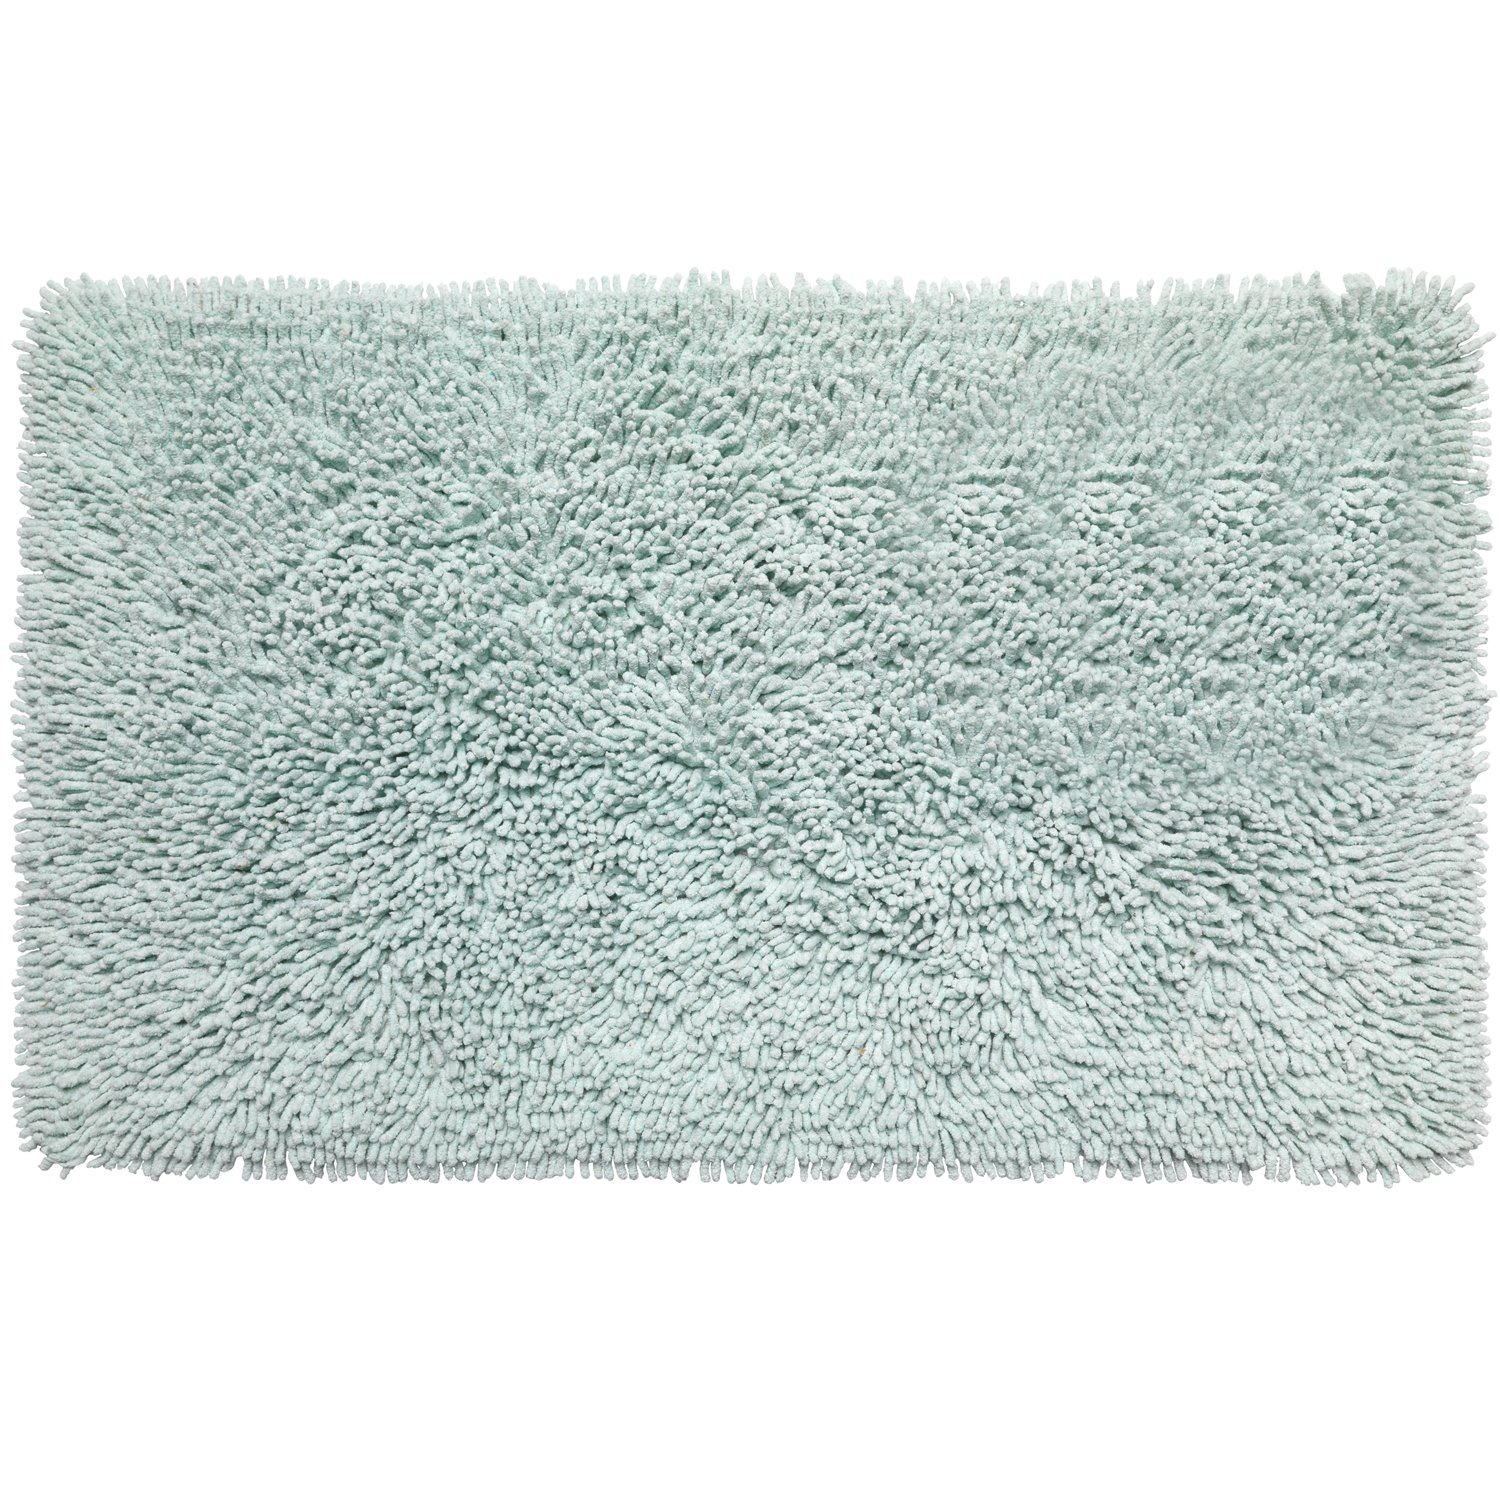 Sweet Home Collection 100% Cotton Bath Rug 21'' x 34'' Quick Dry Soft and Absorbent Non Slip Back Bathroom Mat with Shaggy Chenille Noodle Design, Spa Blue